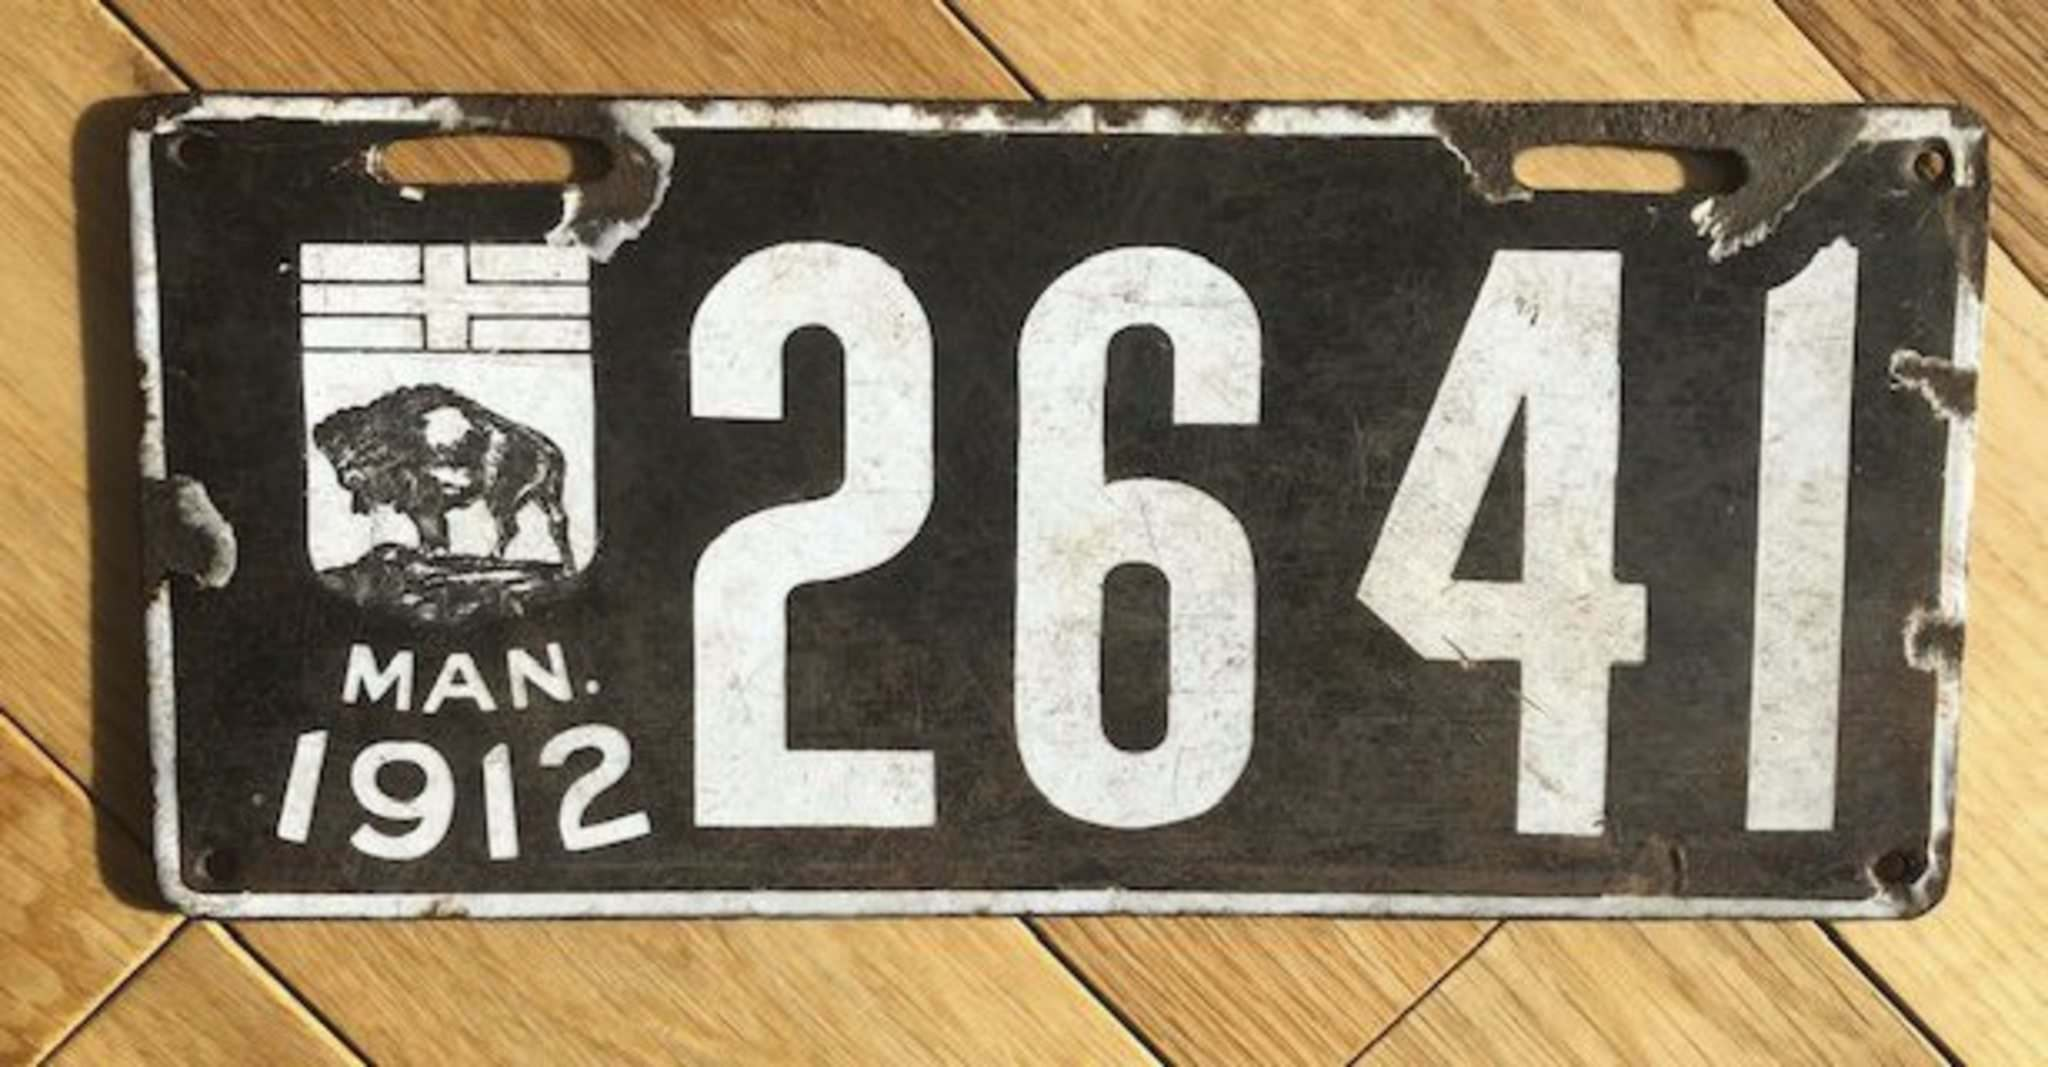 Condition key to value of 1912 licence plate - Winnipeg Free